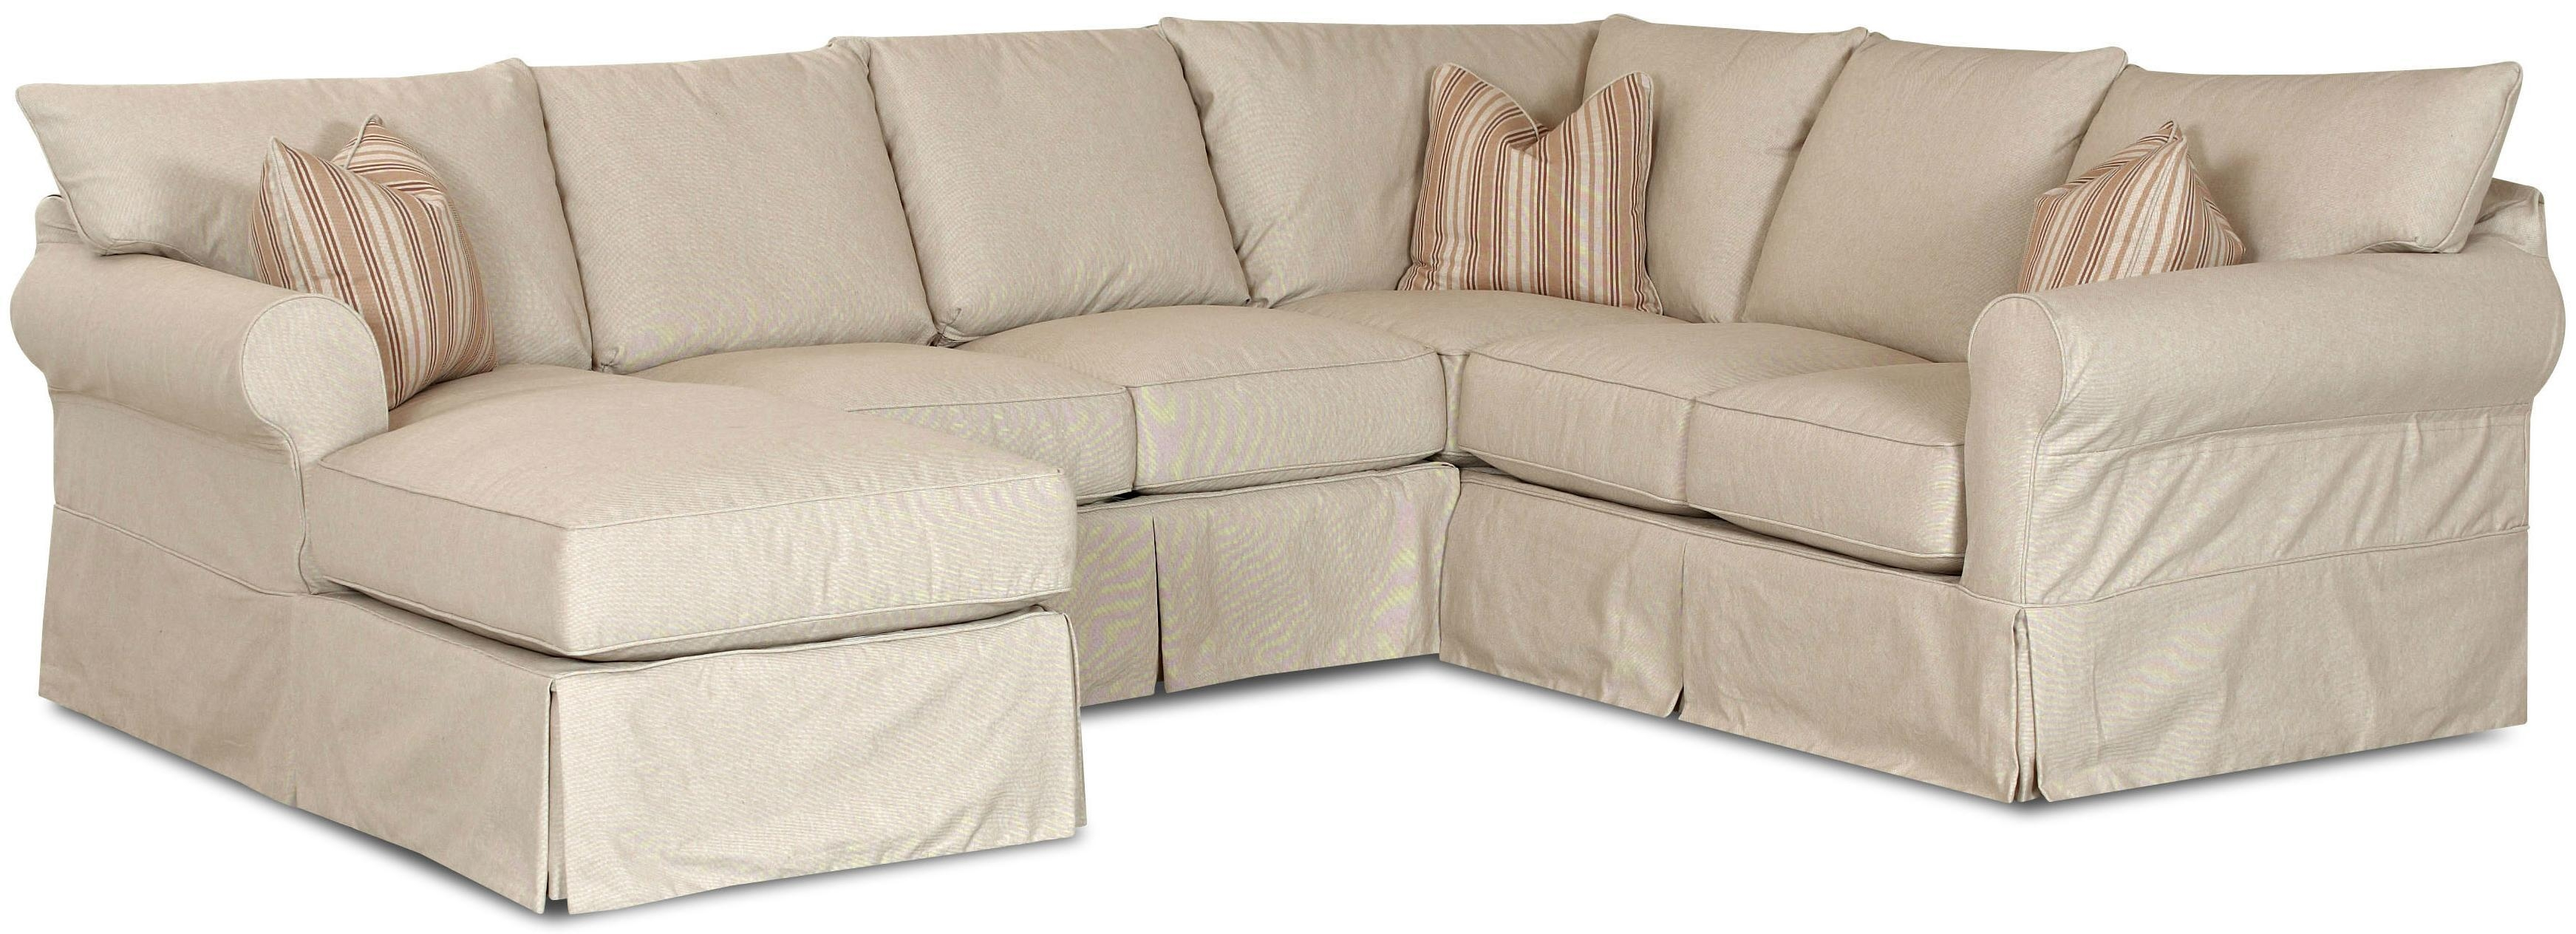 Inspirations: Interesting Furniture Sectional Sofa Slipcovers For For Sofas Cover For Sectional Sofas (Image 11 of 20)